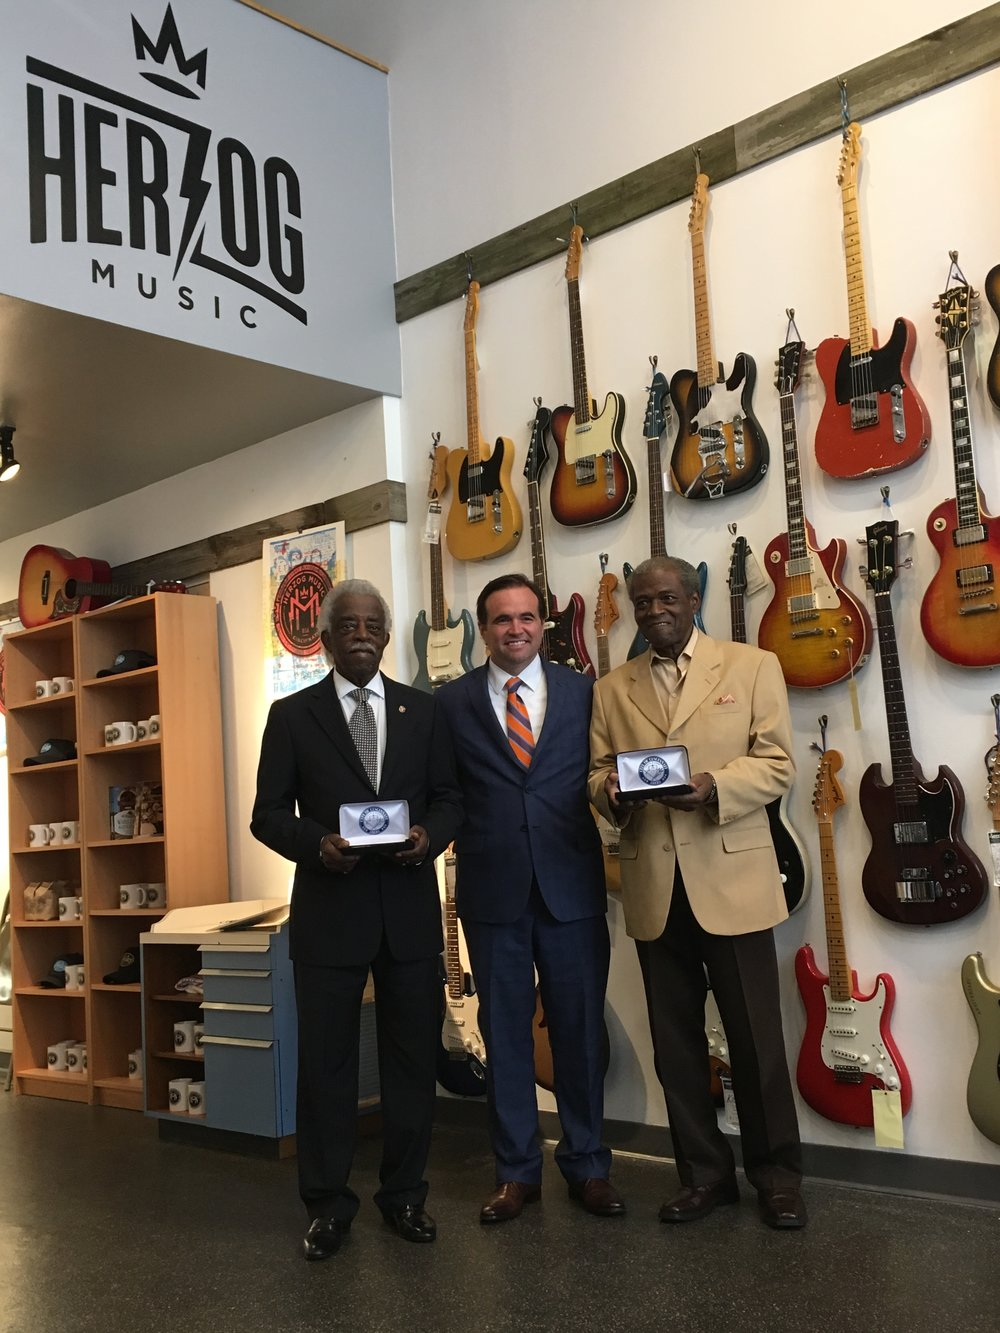 Mayor John Cranley gives keys to the city to King Records legends Otis Williams and Philip Paul, then announces City Music Ambassador program at Herzog Music